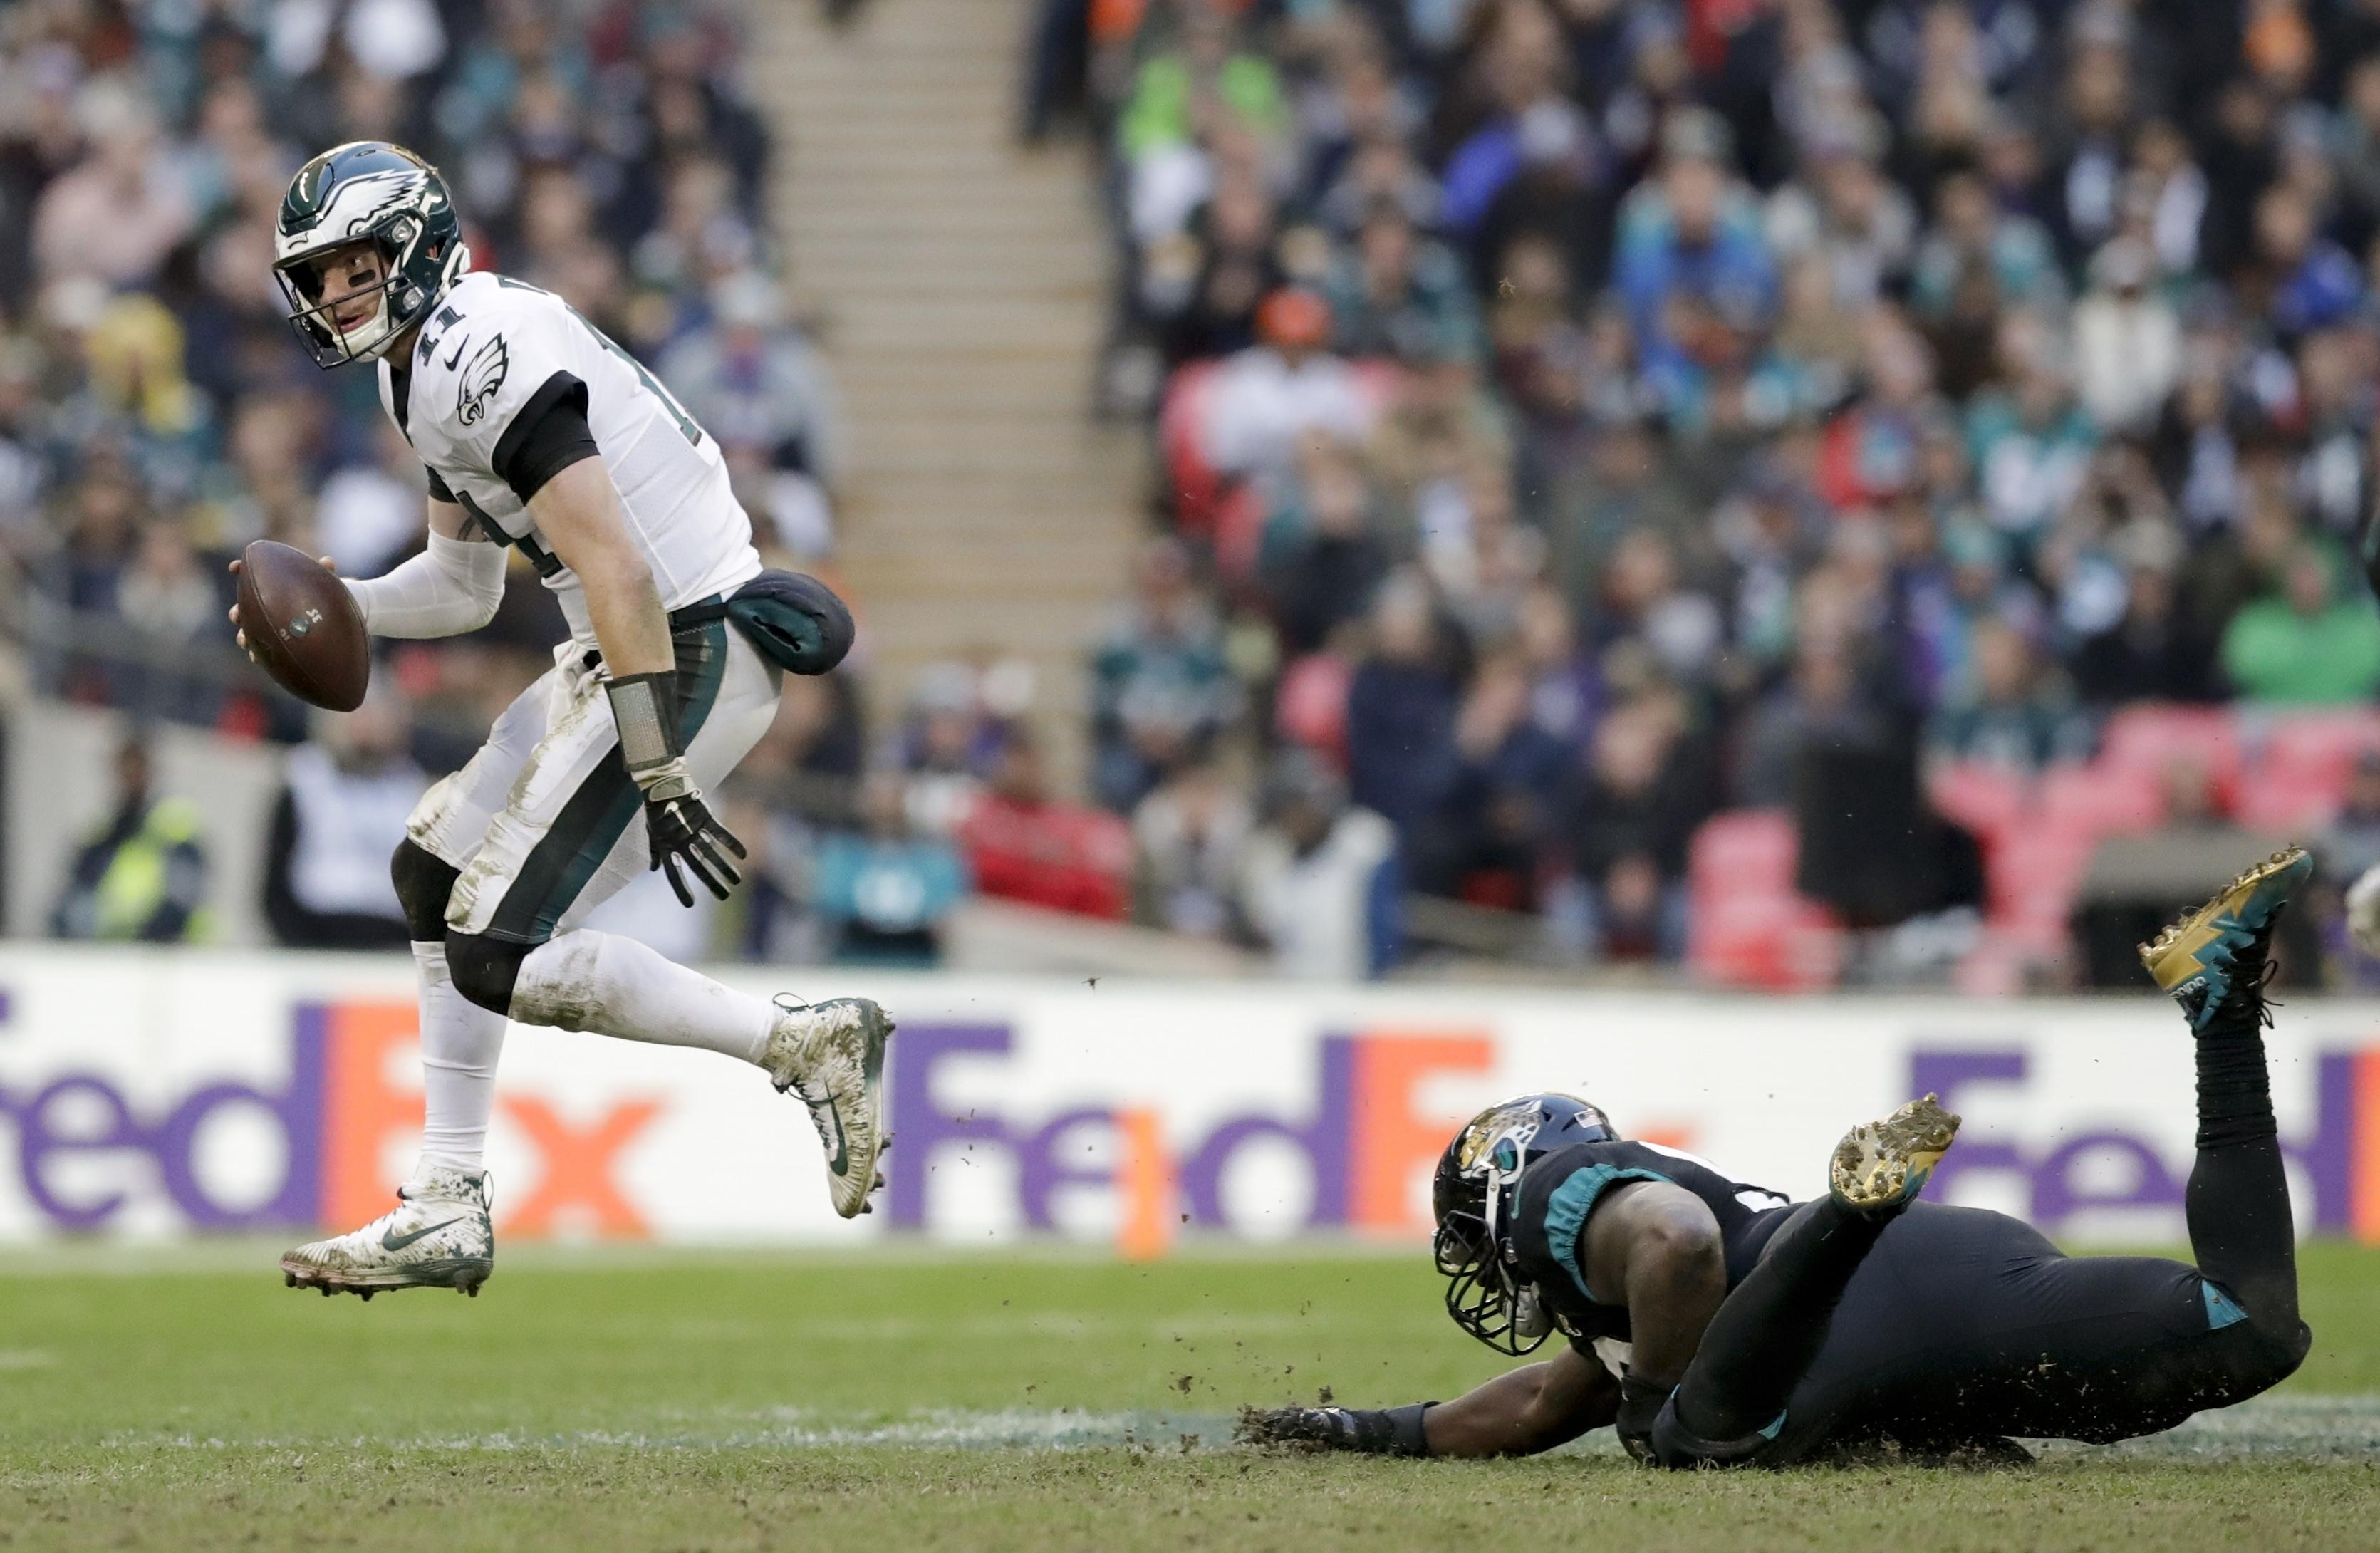 Carson Wentz was the hero for the Eagles on a great day at Wembley